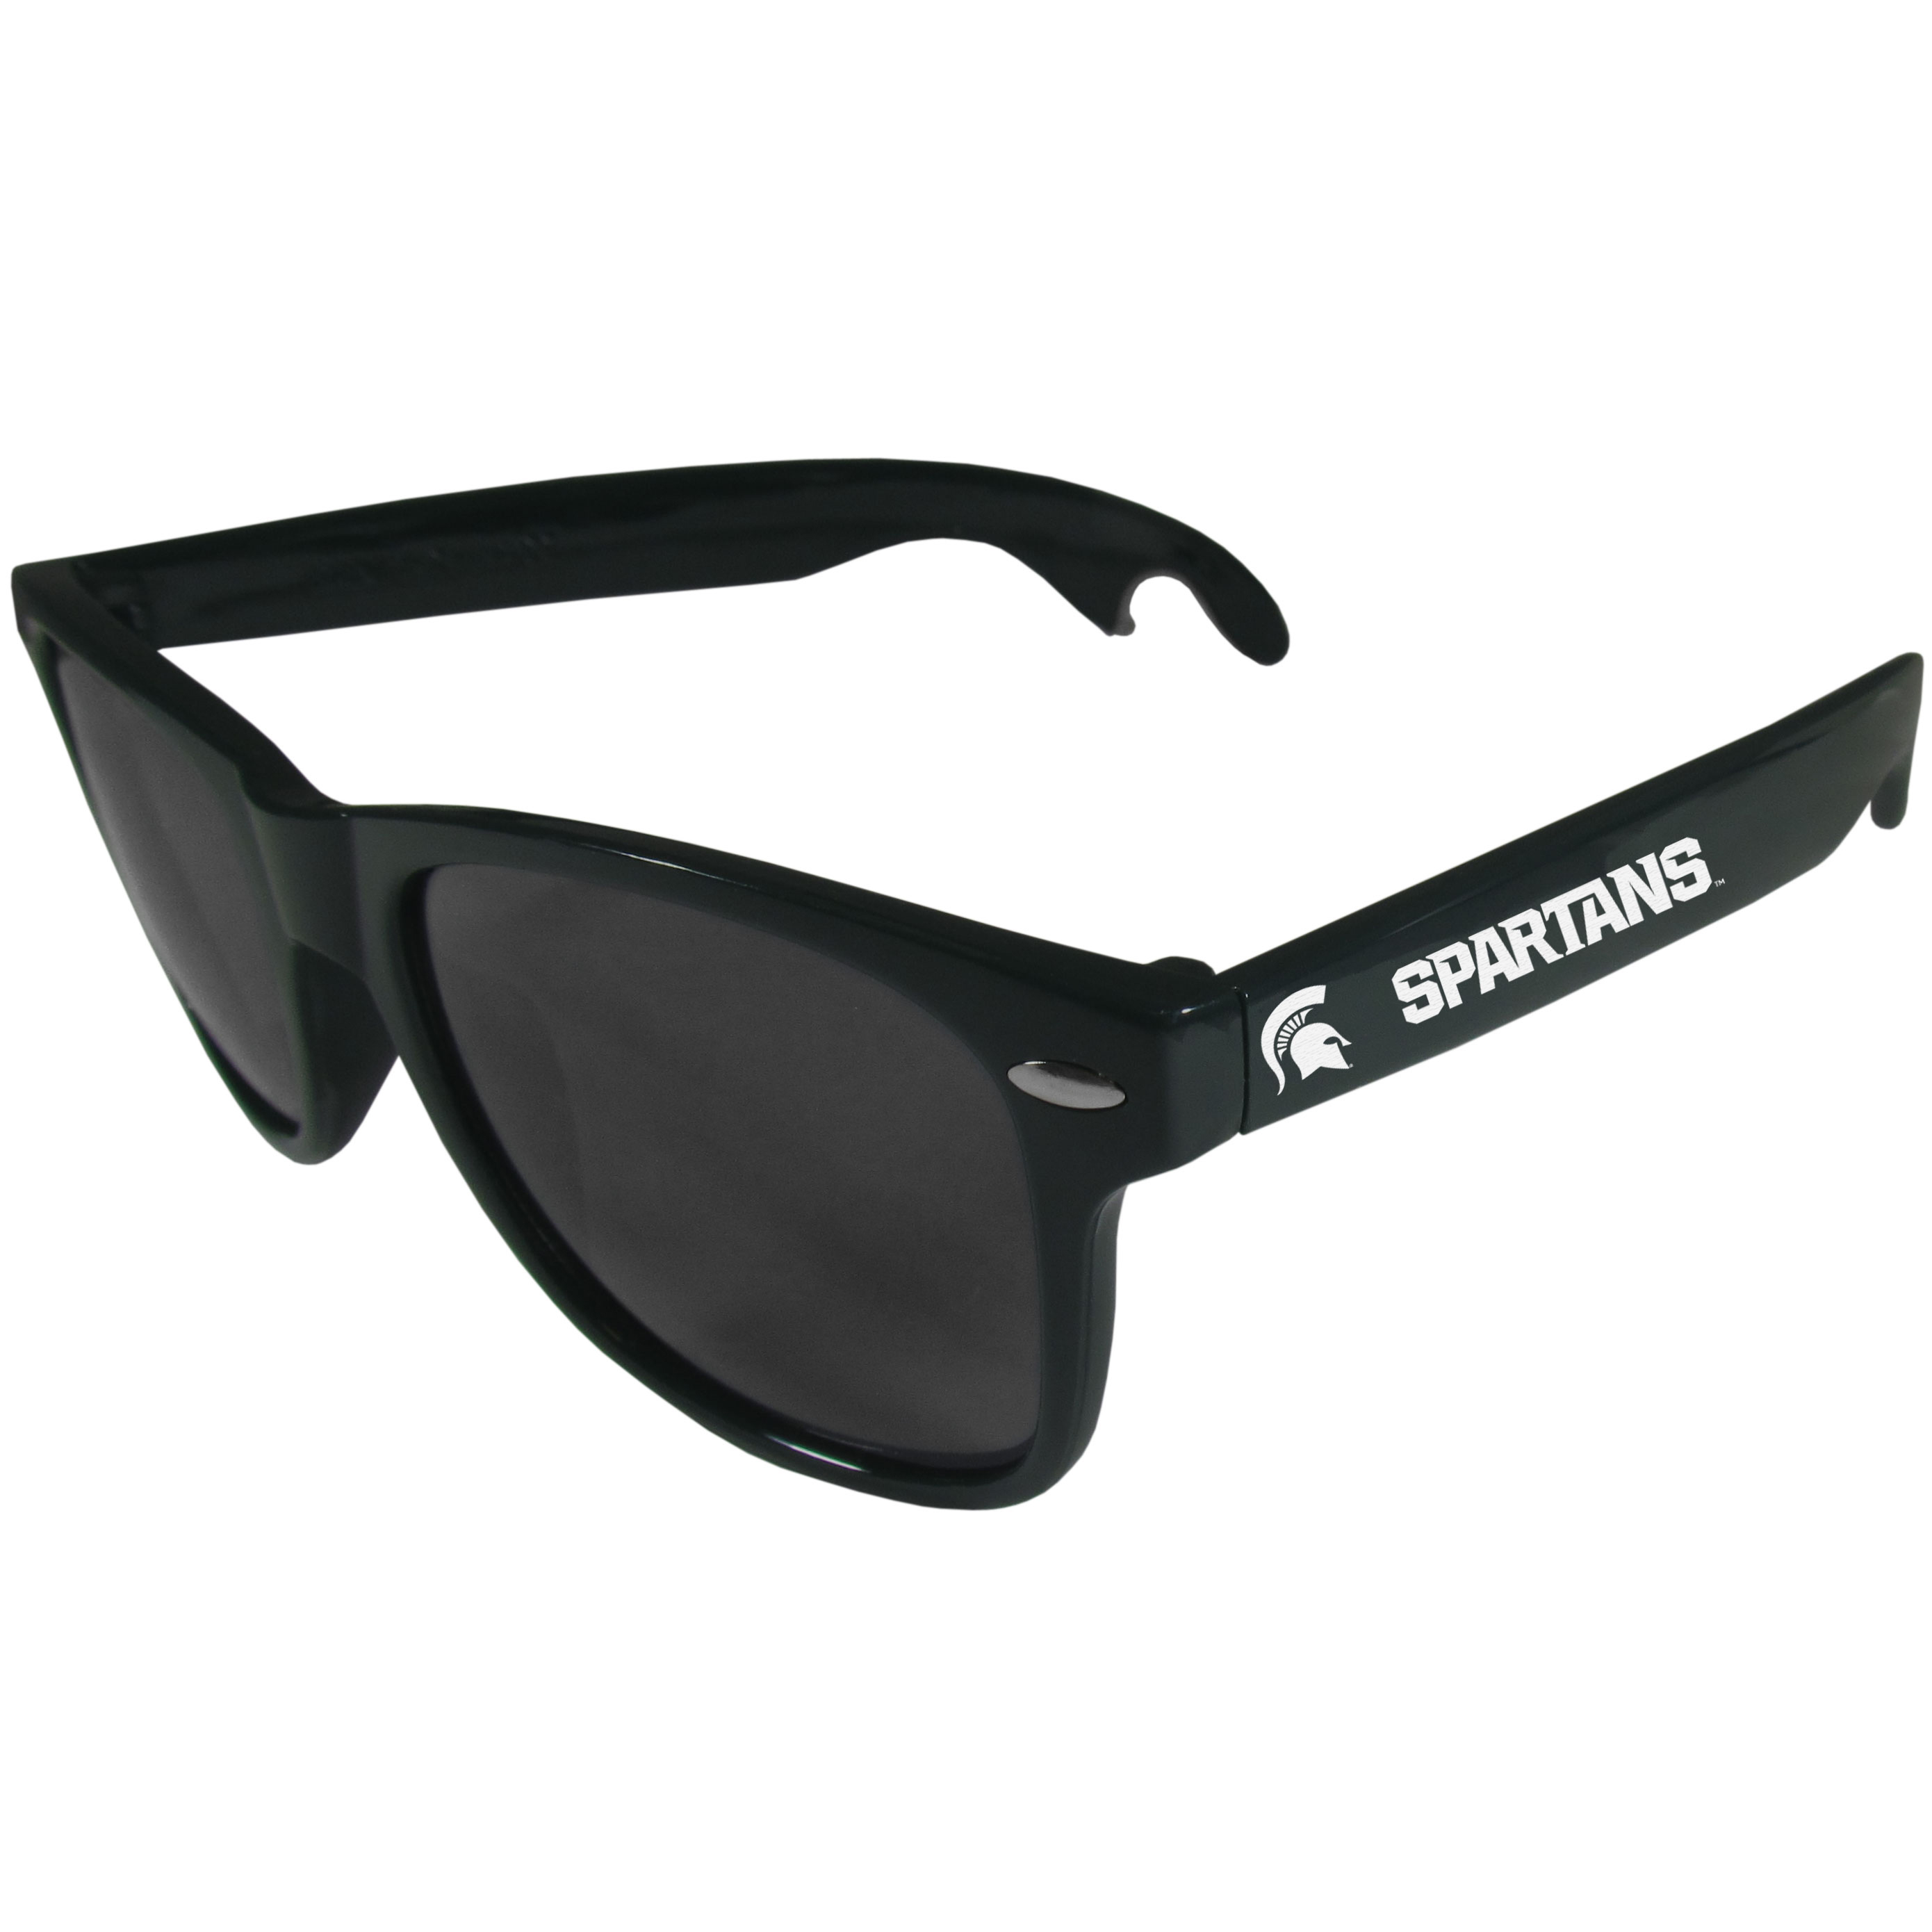 Michigan St. Spartans Beachfarer Bottle Opener Sunglasses, Dark Green - Seriously, these sunglasses open bottles! Keep the party going with these amazing Michigan St. Spartans bottle opener sunglasses. The stylish retro frames feature team designs on the arms and functional bottle openers on the end of the arms. Whether you are at the beach or having a backyard BBQ on game day, these shades will keep your eyes protected with 100% UVA/UVB protection and keep you hydrated with the handy bottle opener arms.